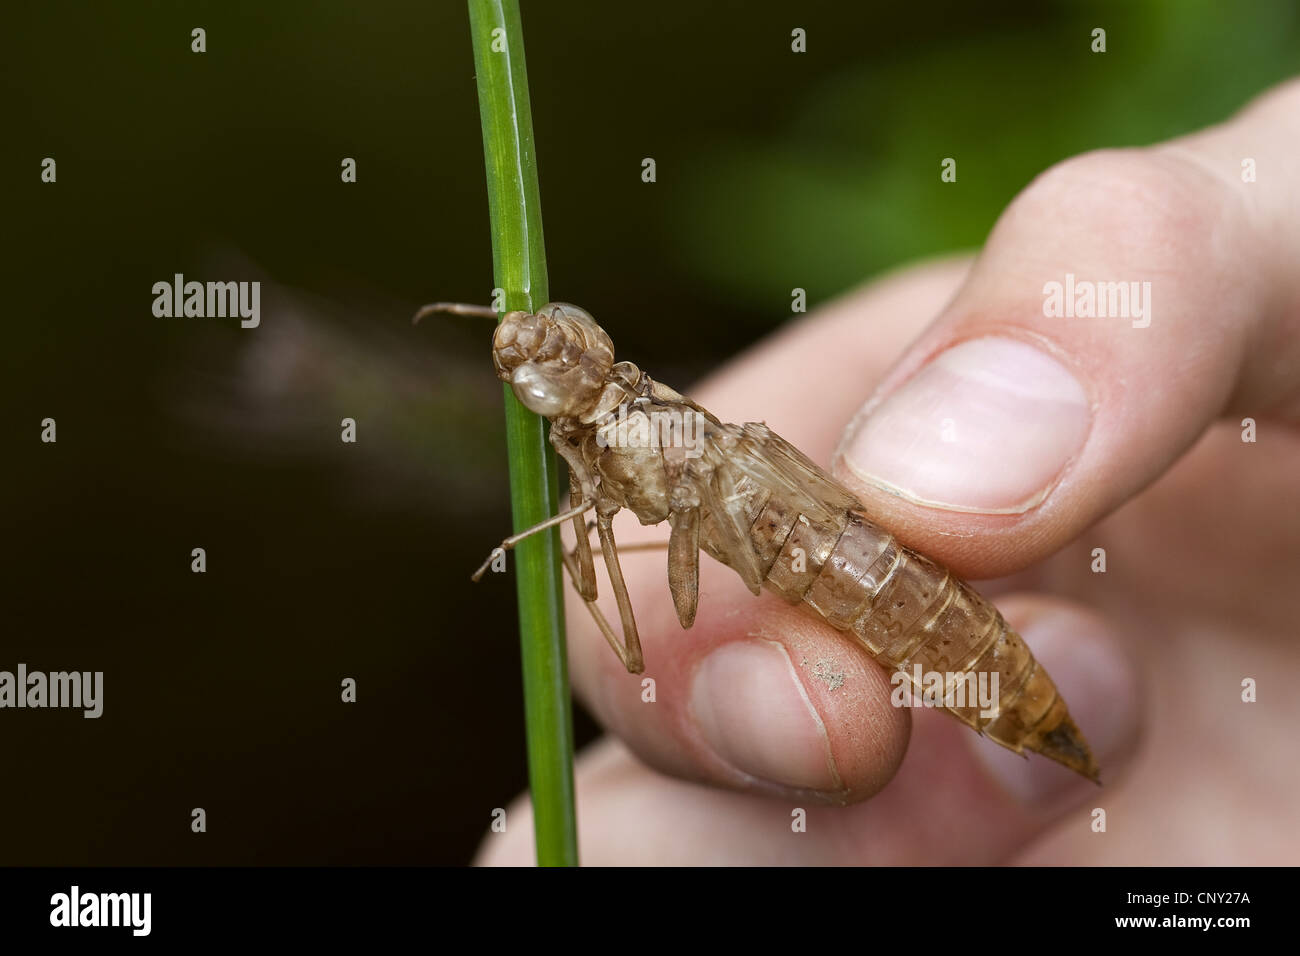 emperor dragonfly (Anax imperator), child collecting an exuvia at a lake shore, Germany Stock Photo